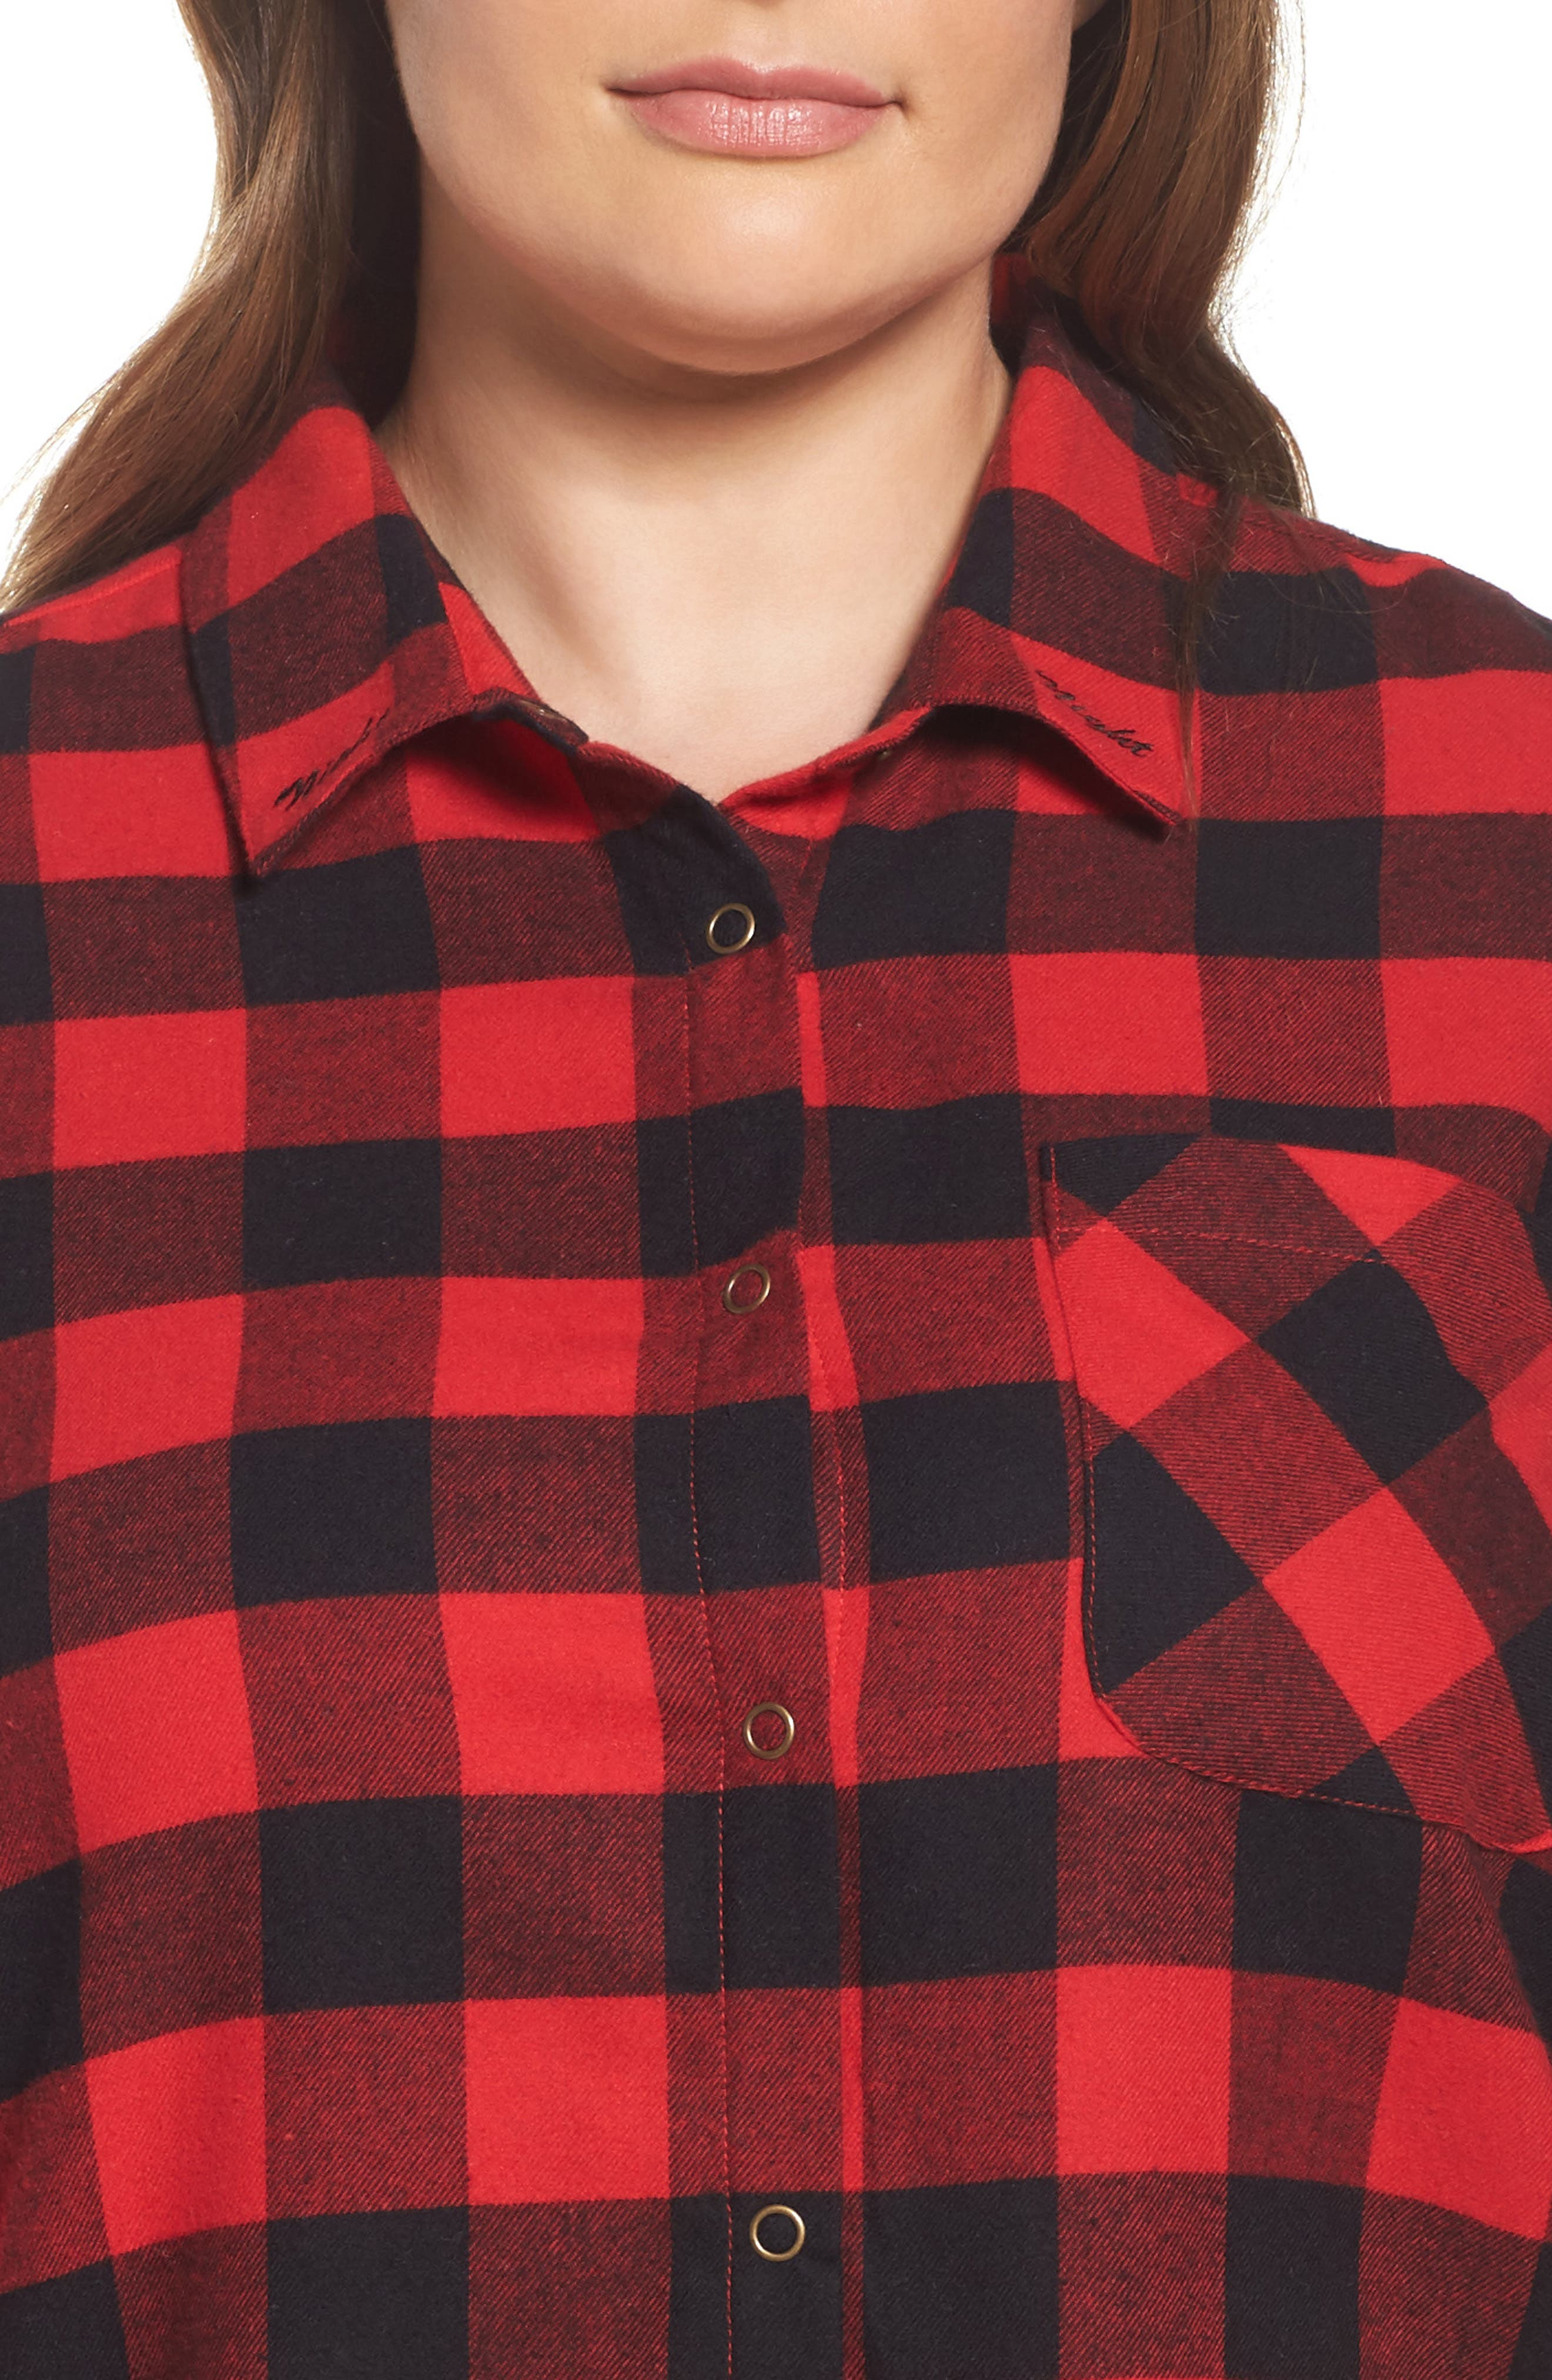 Flannel Pajamas,                             Alternate thumbnail 6, color,                             Red Pepper Buffalo Check